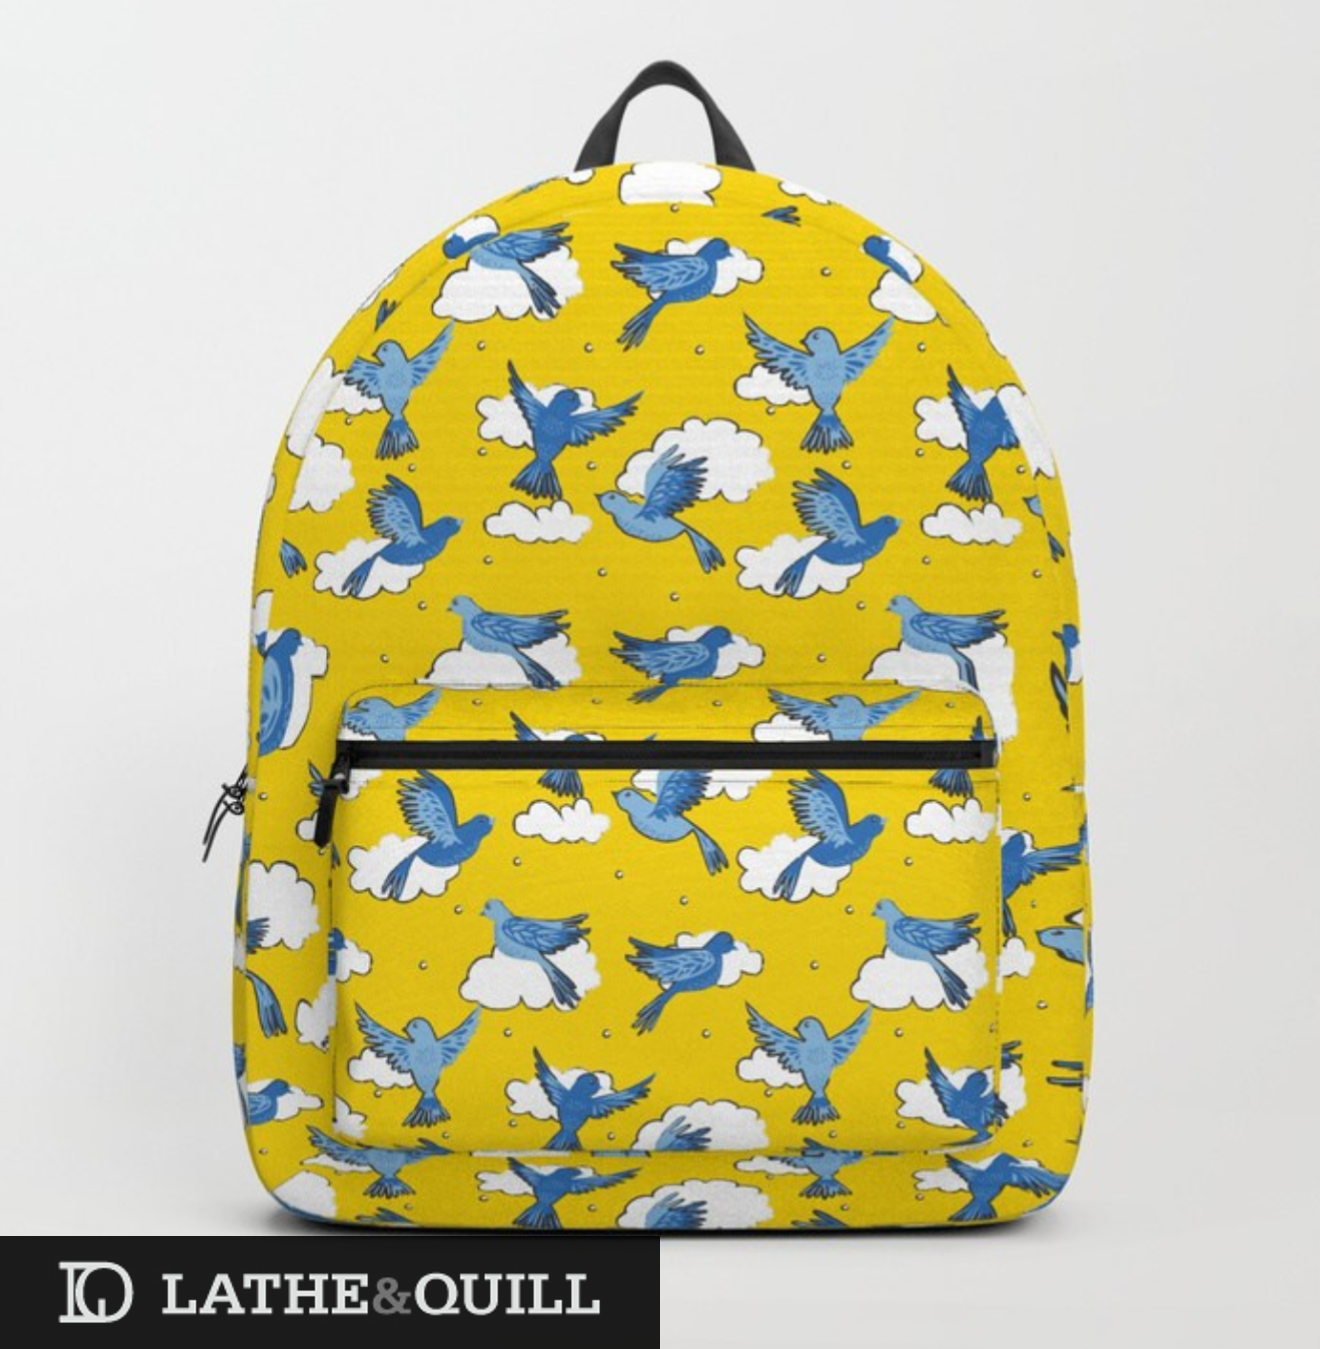 Boobkags from Society6 with illustrated pattern of birds